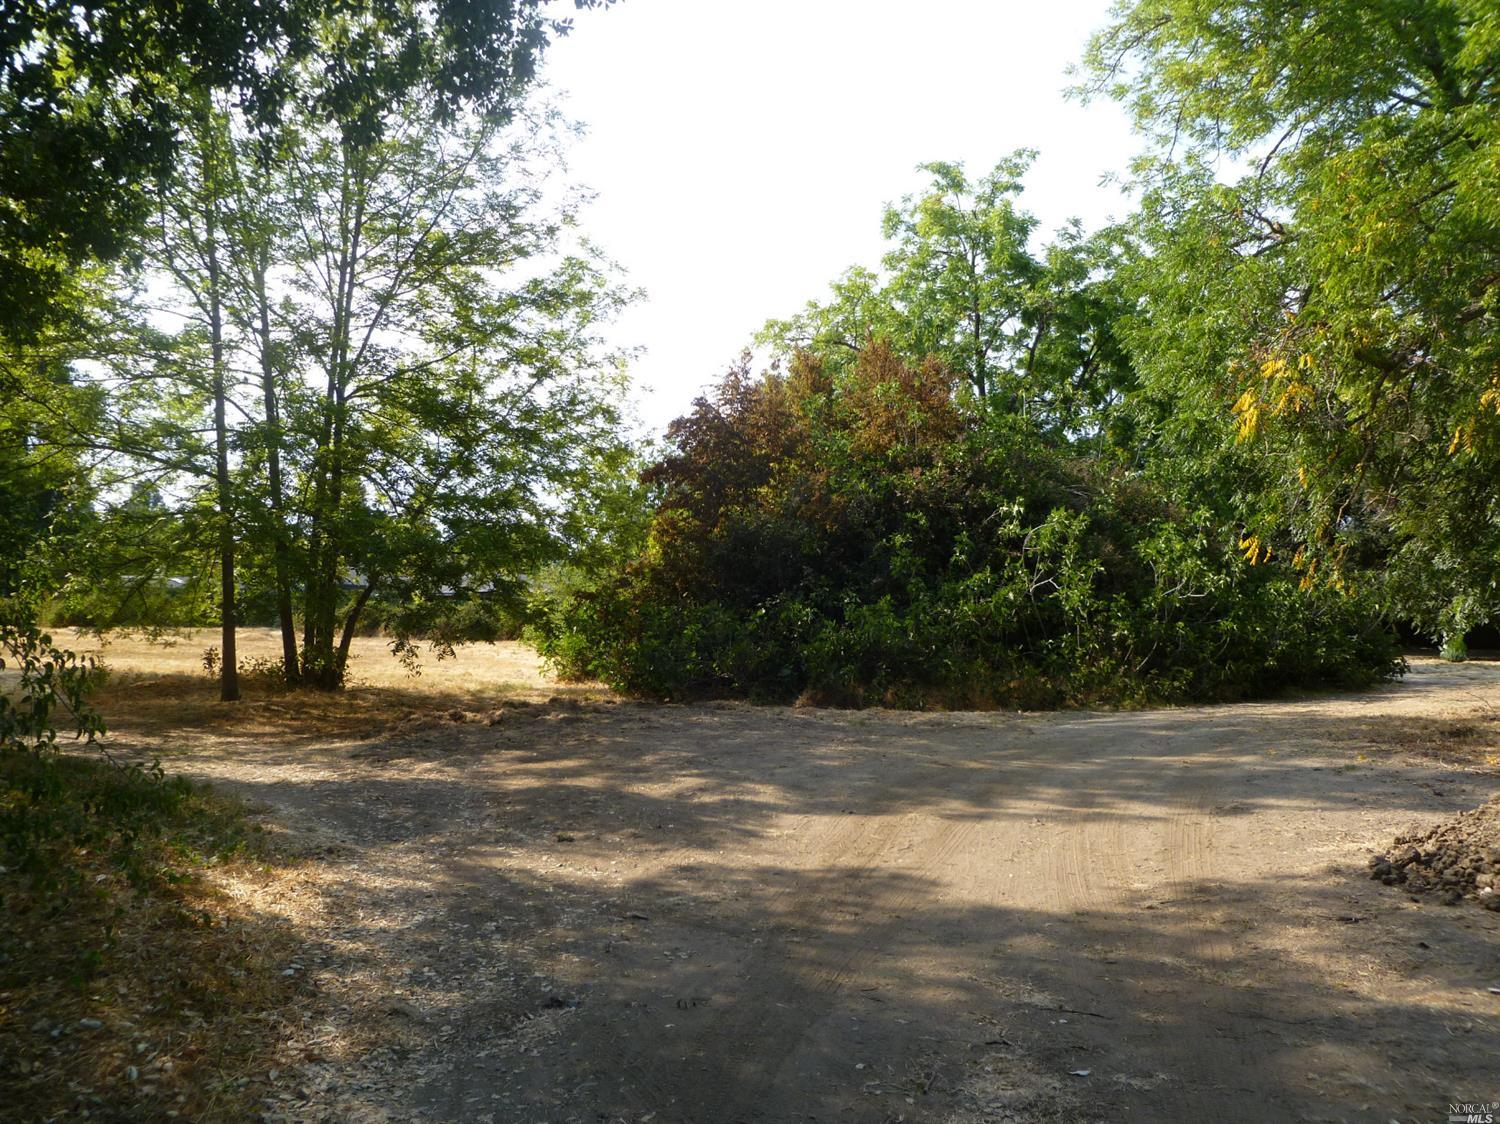 Much sought after approx. 3 acre development land at the end of Lone Oak Dr. This property is zoned